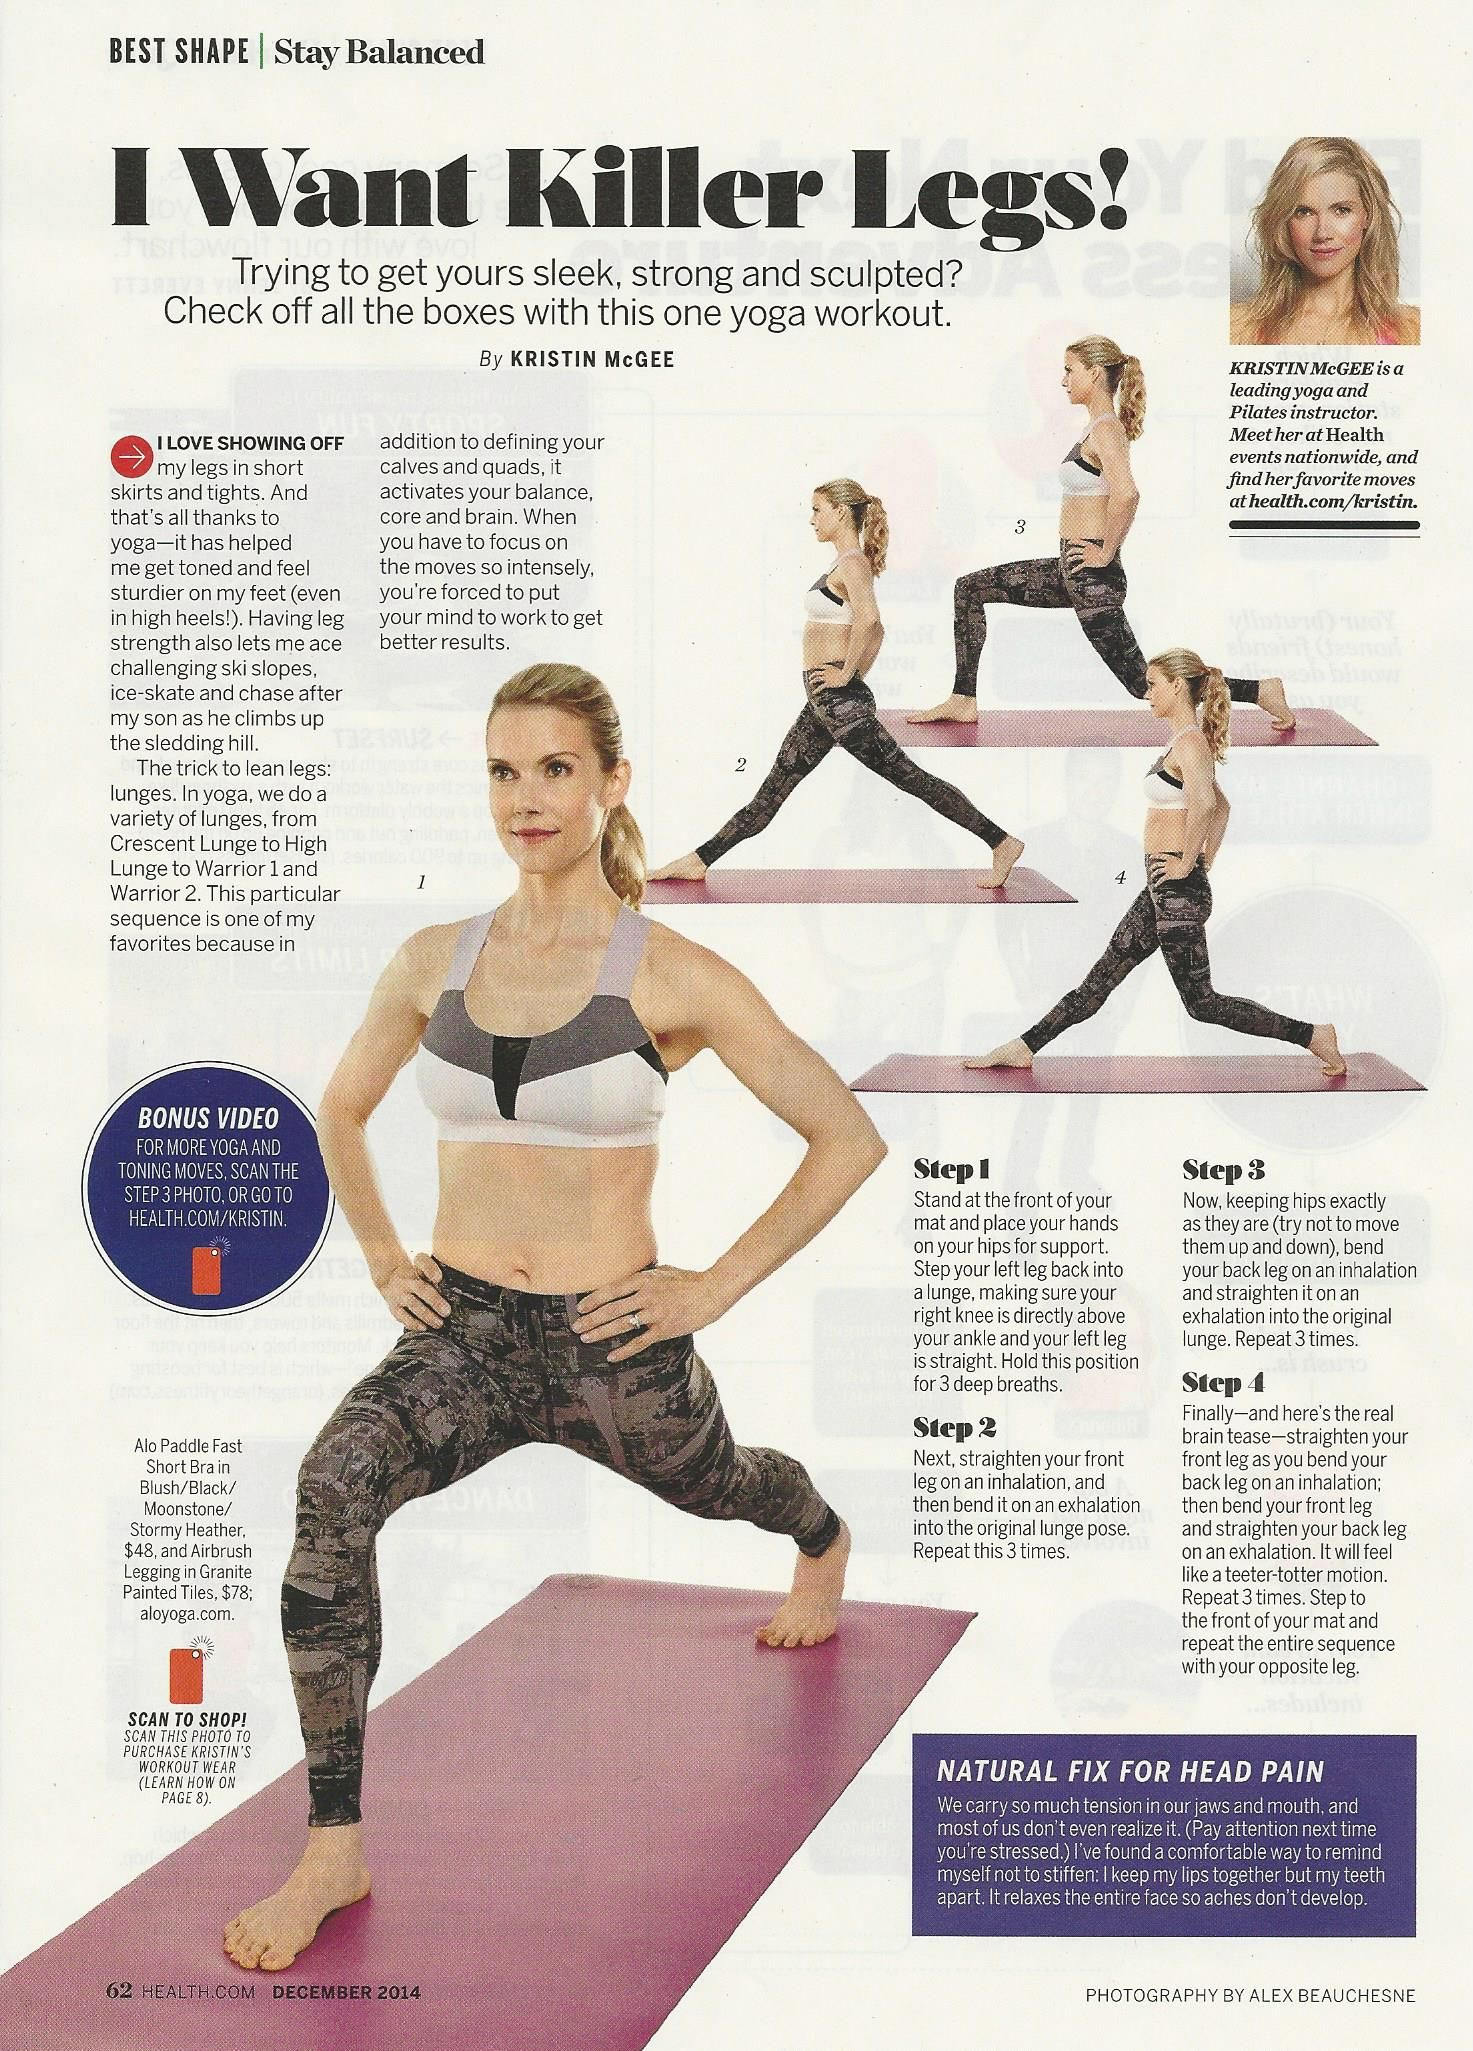 How To Get Killer Legs From Health Magazine Featuring Kristin McGee